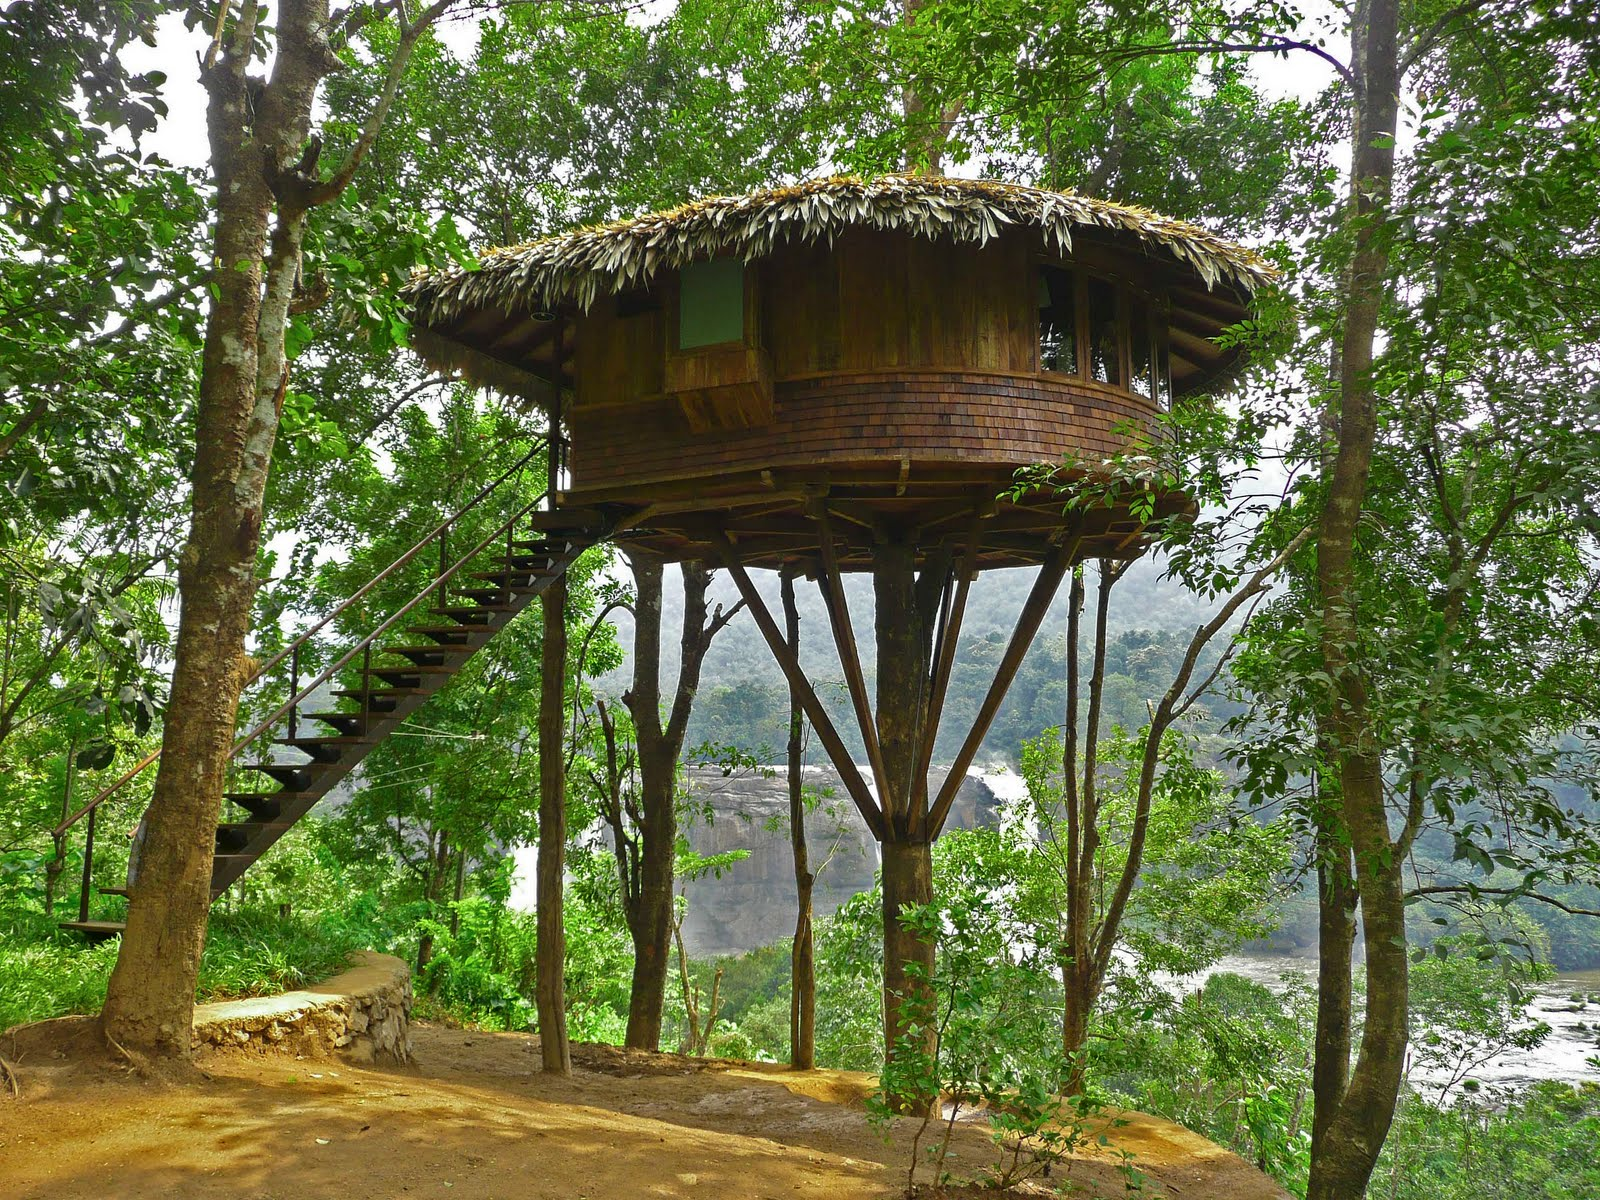 17 gorgeous tree houses that are nicer than your real house on tree arm designs, flowers designs, tree of life designs, candle designs, tree twig designs, tree root designs, tree trunk designs, scarecrow designs, tree leaf designs, snowman designs, tree palm designs, tree leg designs, tree back designs, beach designs, tree hand designs, tree wood designs, pencil designs, snow designs, tree family designs,